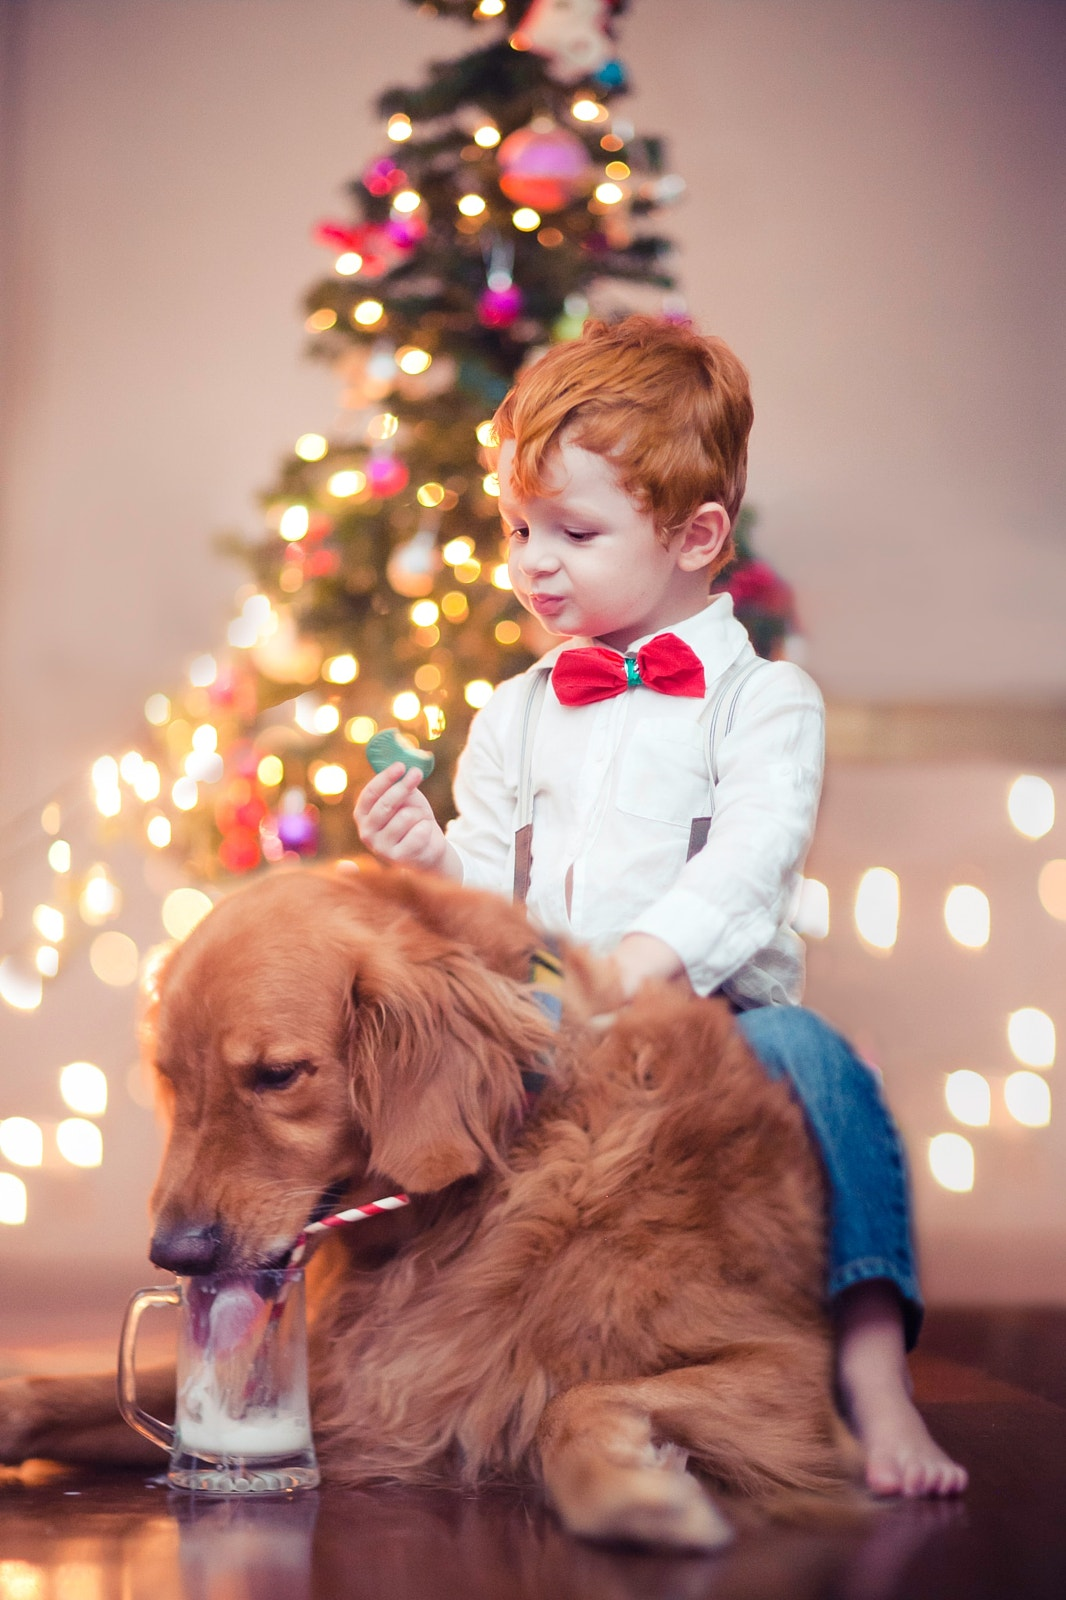 20 Photos That Will Make You Nostalgic for the Holidays... Including Some Very Adorable Pets